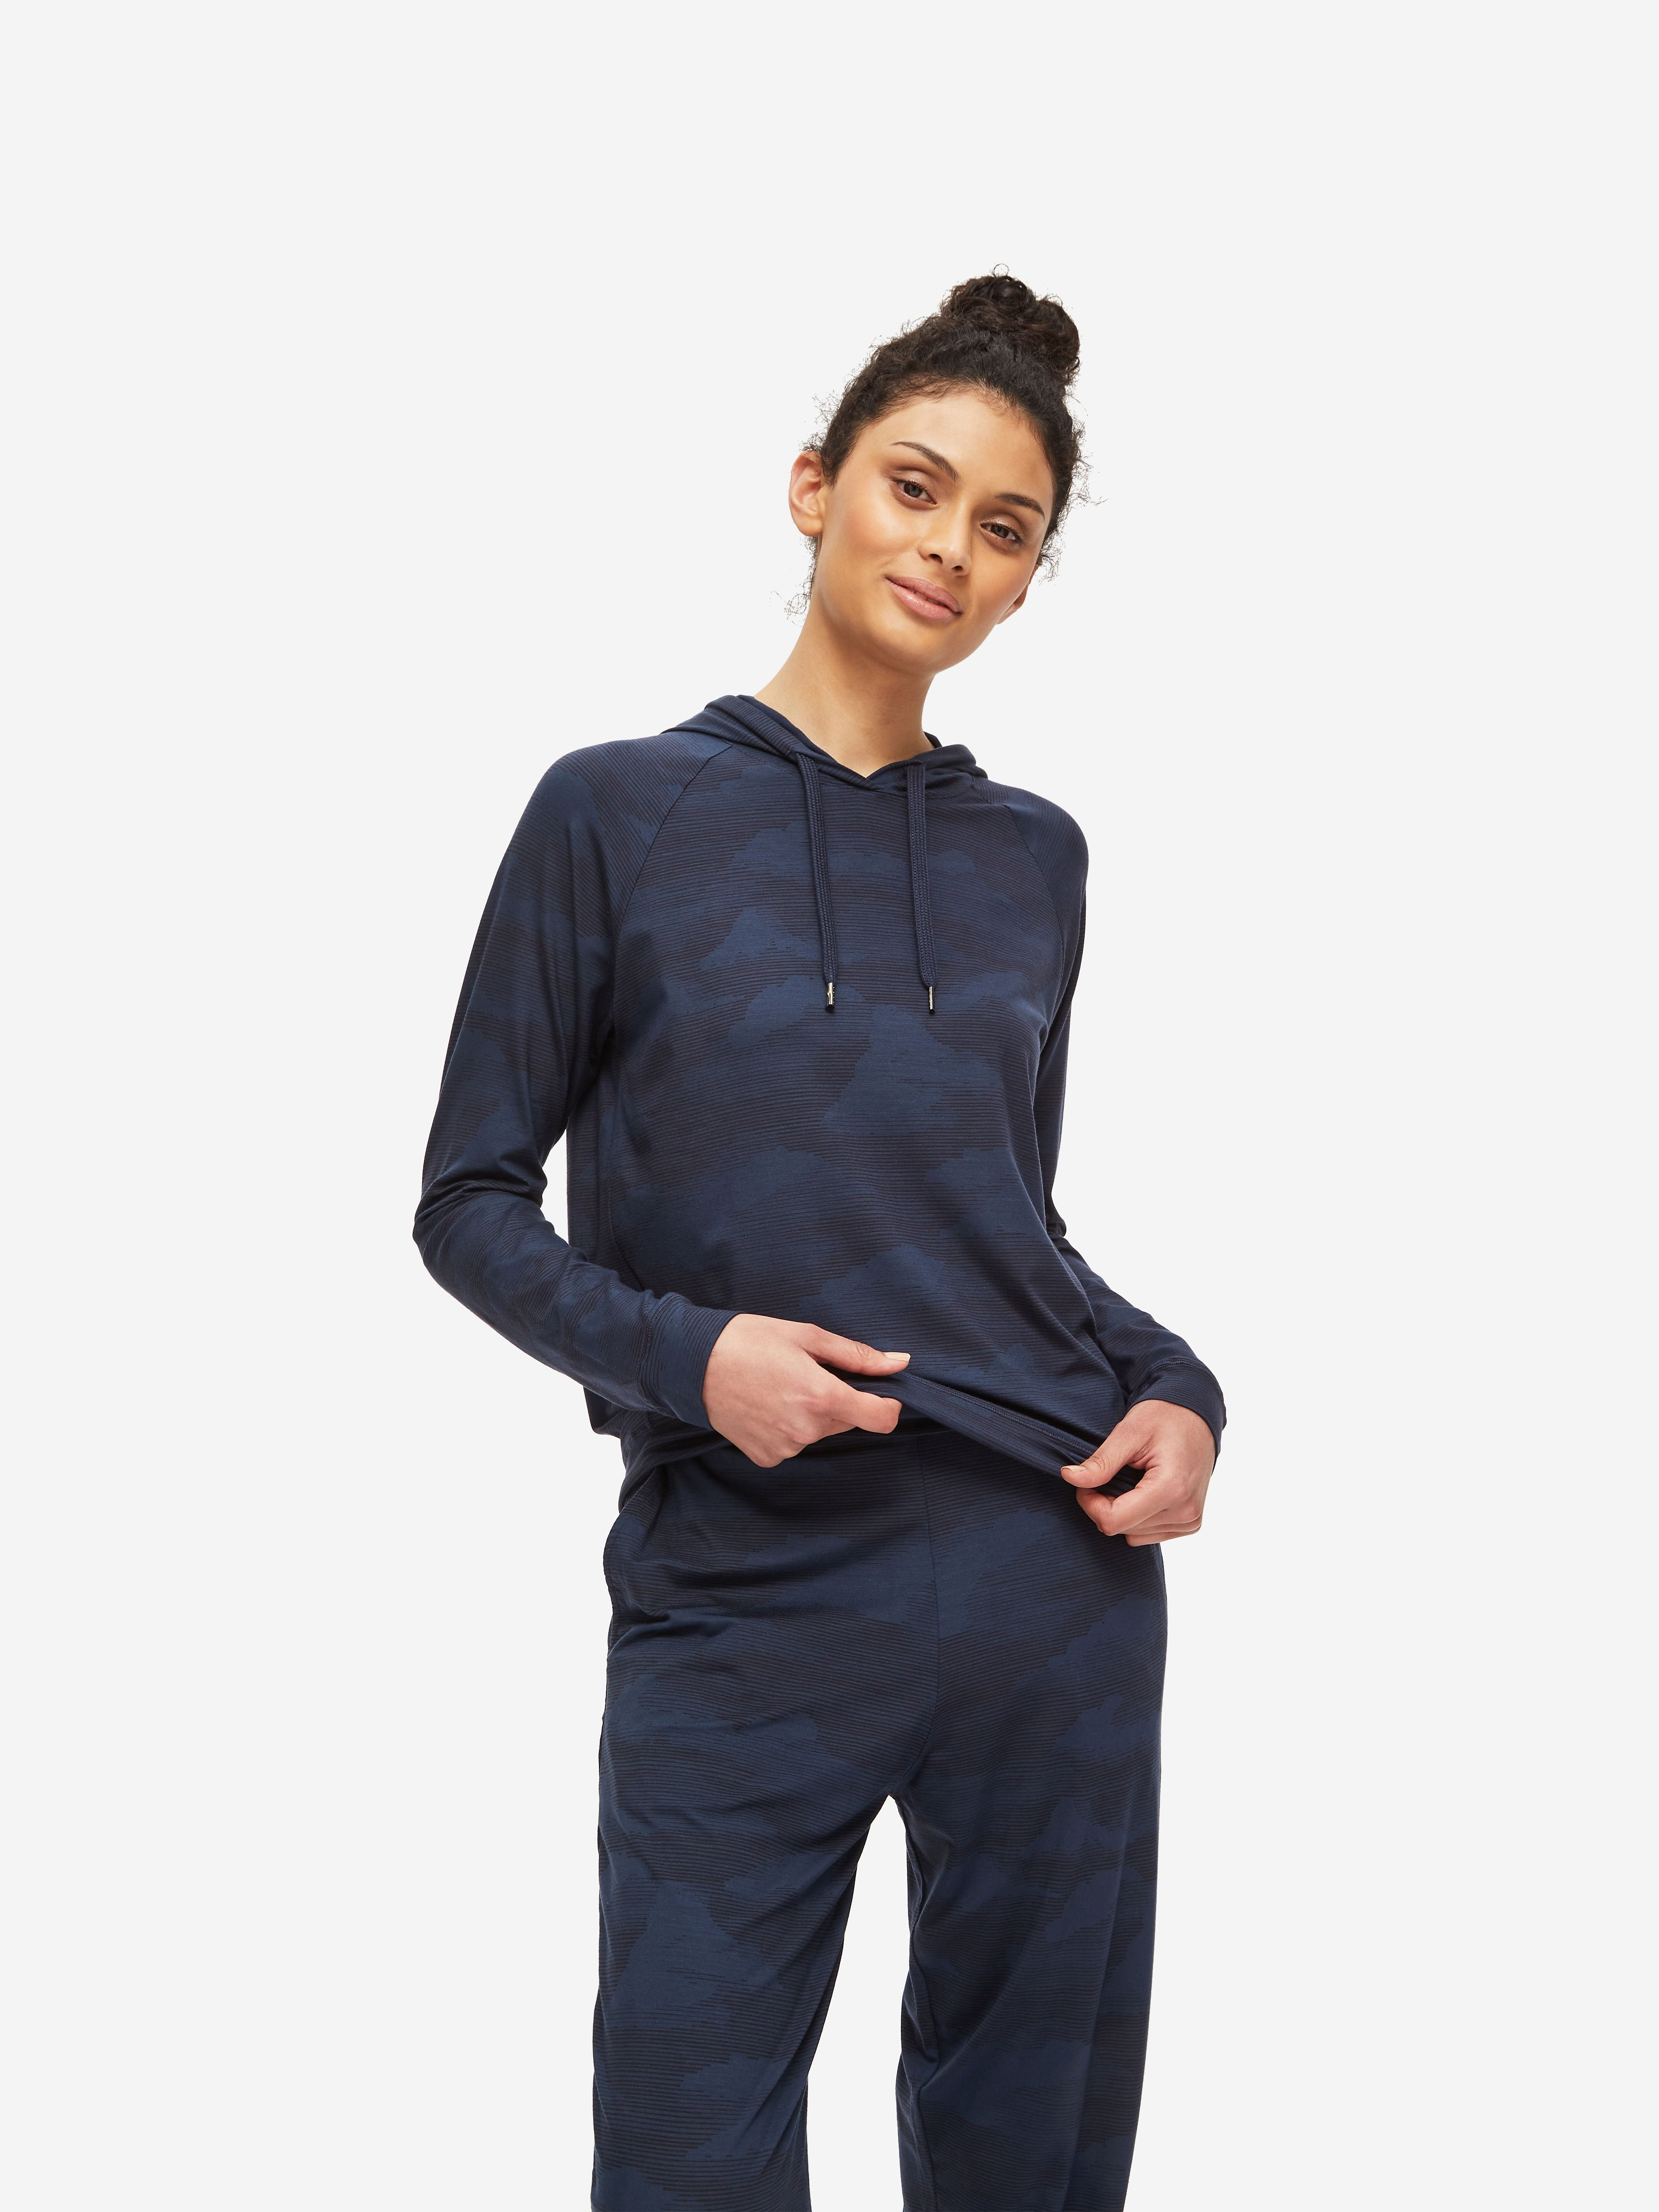 Women's Pullover Hoodie London 5 Micro Modal Stretch Navy